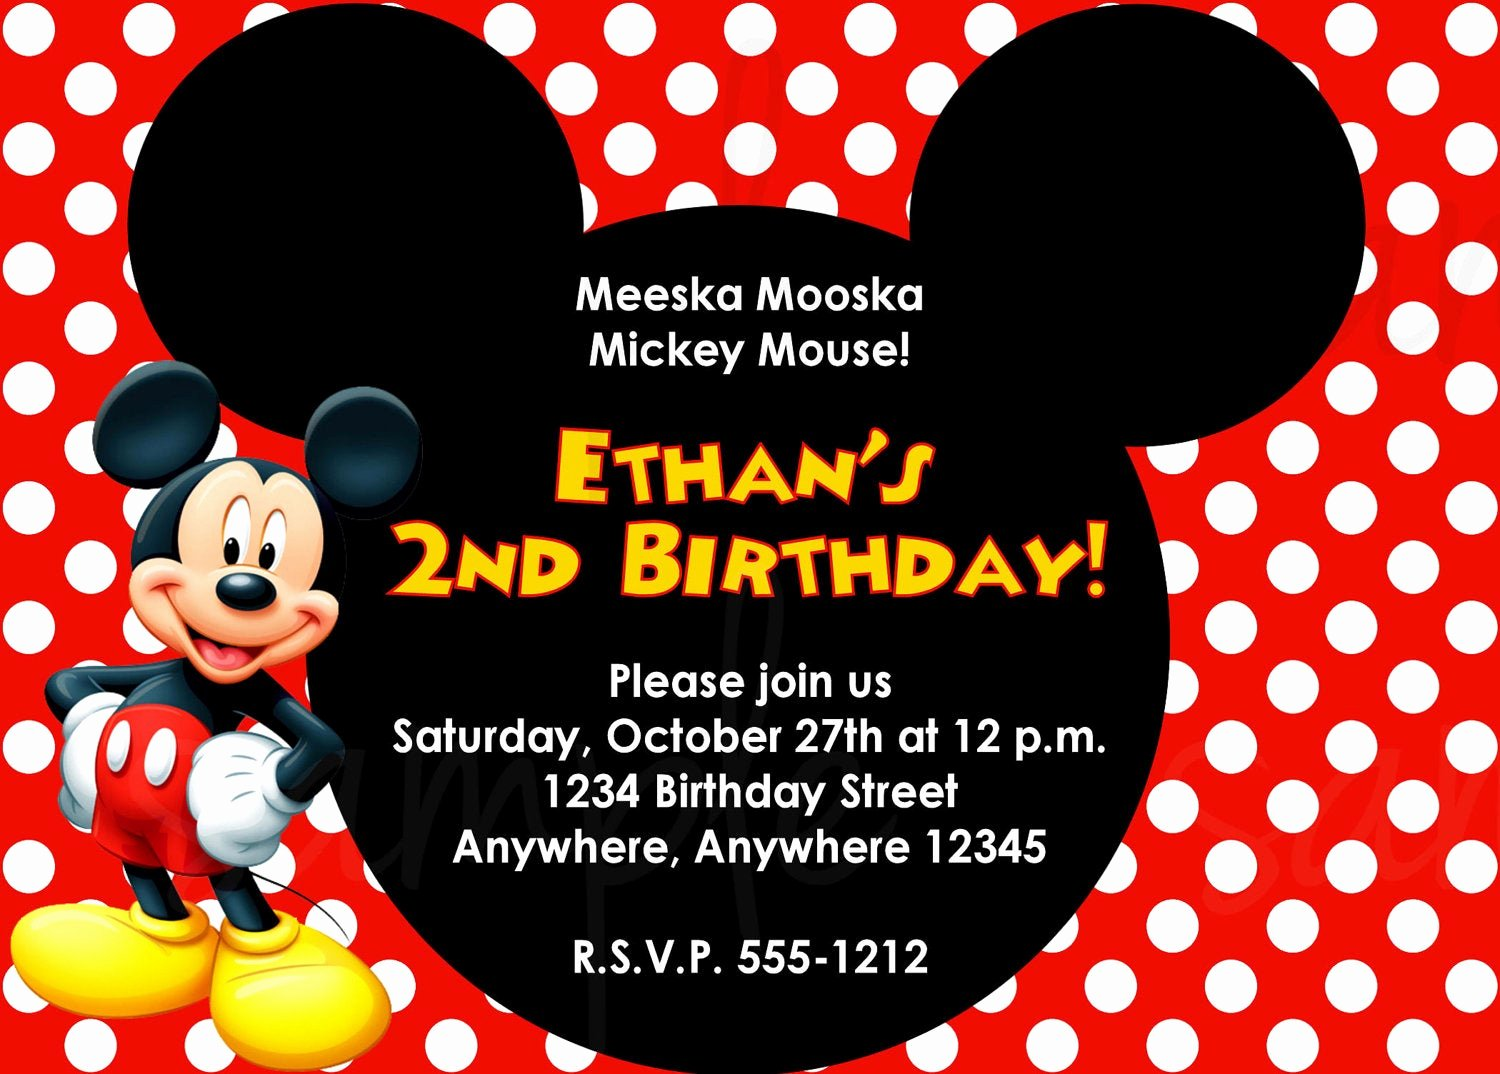 Mickey Mouse Birthday Invitations Wording New Mickey Mouse Birthday Invitation